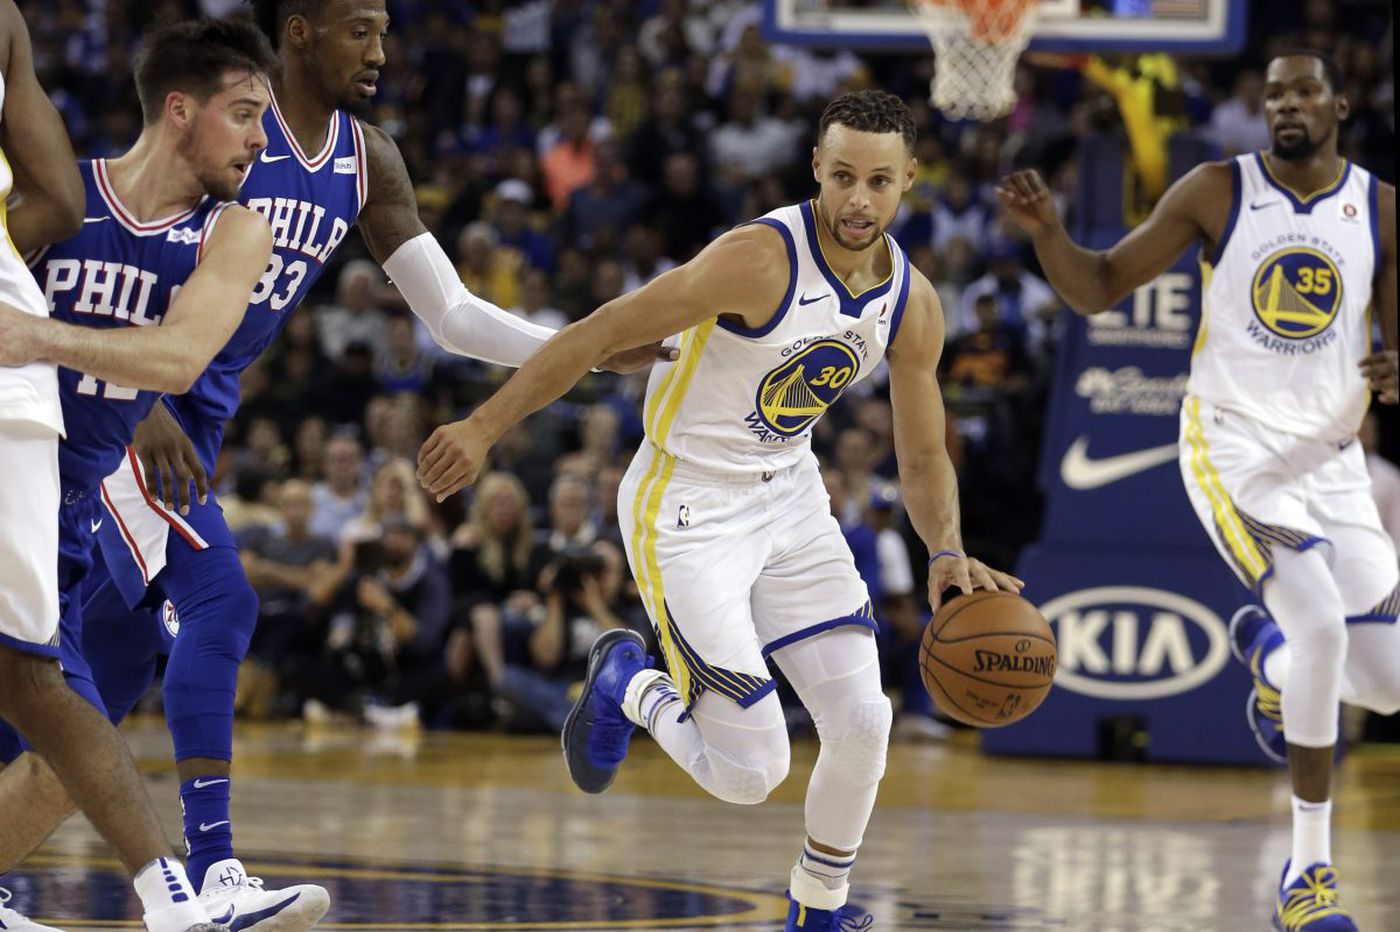 Sixers-Warriors: Joel Embiid and Ben Simmons struggle, and other quick thoughts from a 135-114 loss